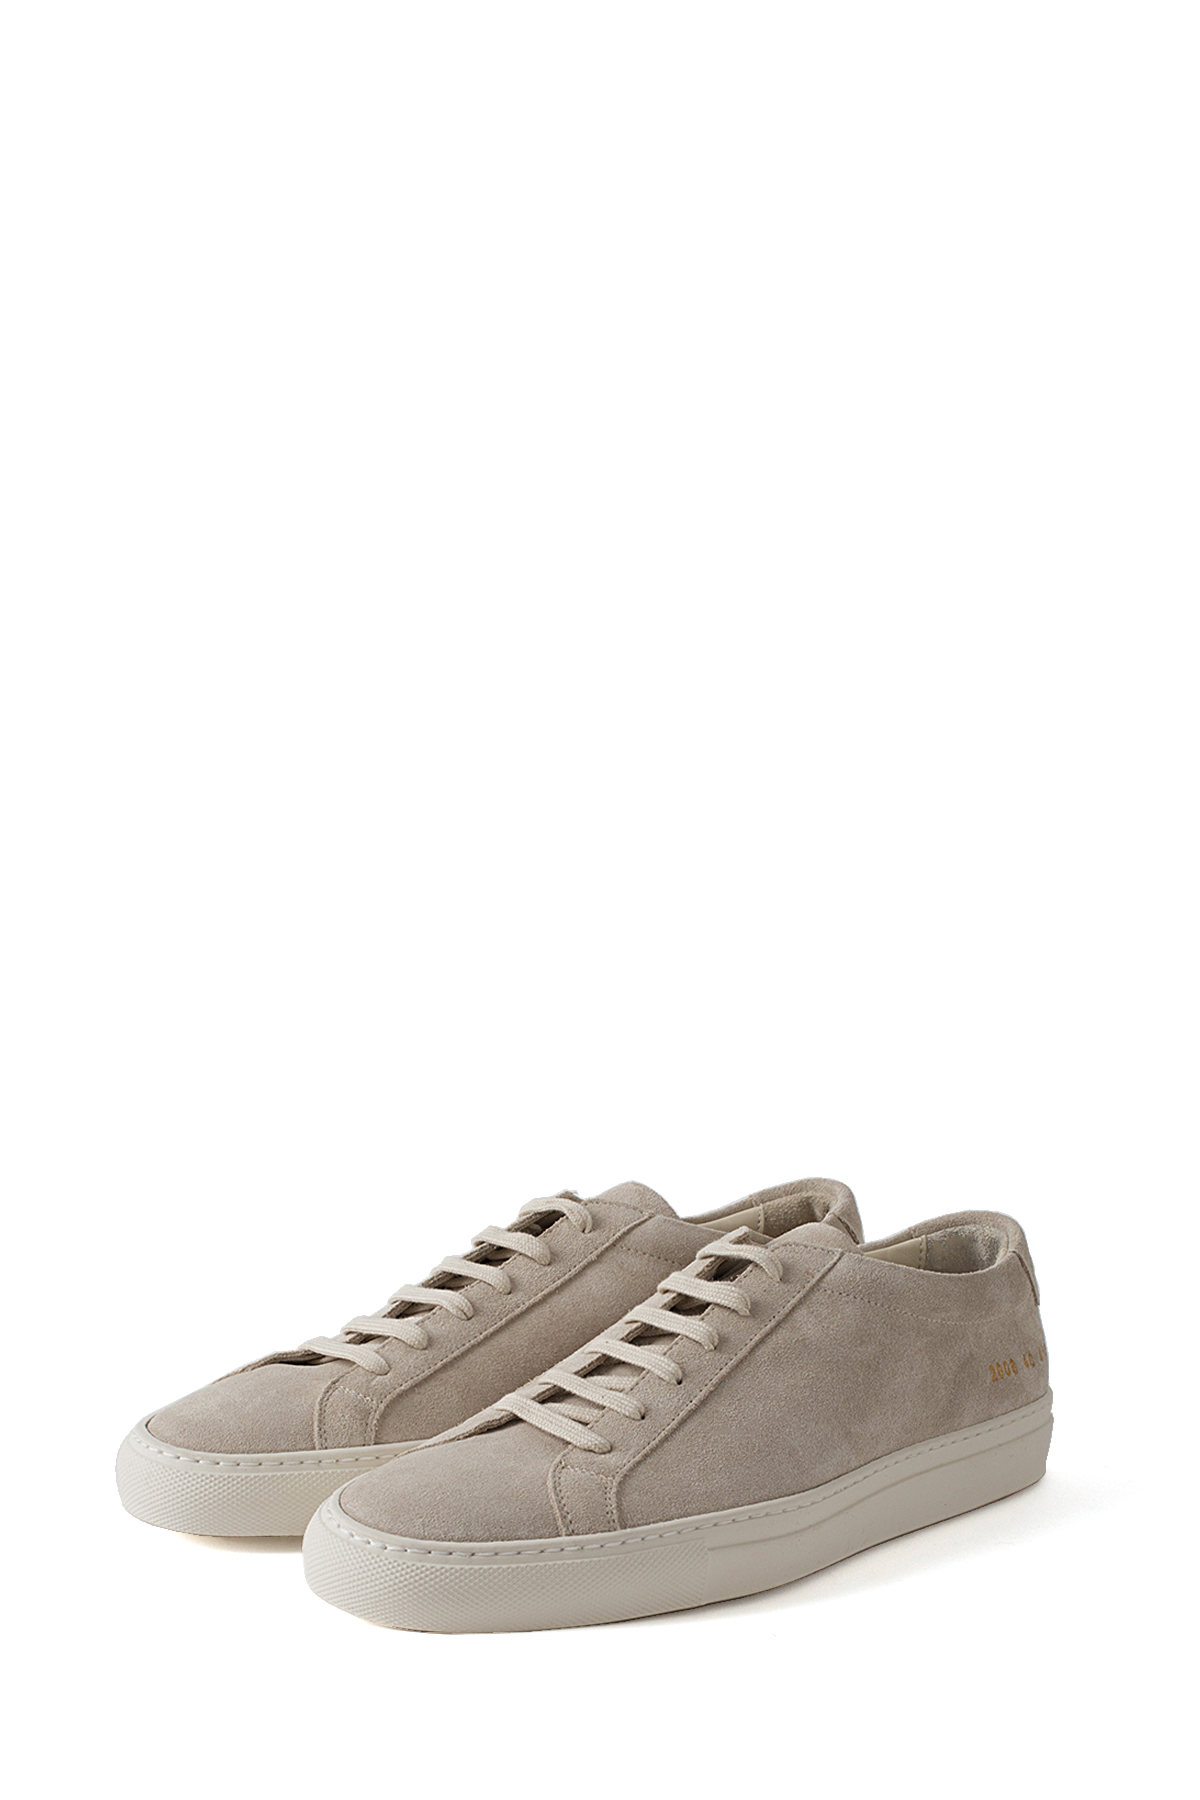 Common Projects : Original Achilles Low in Suede (Off White)